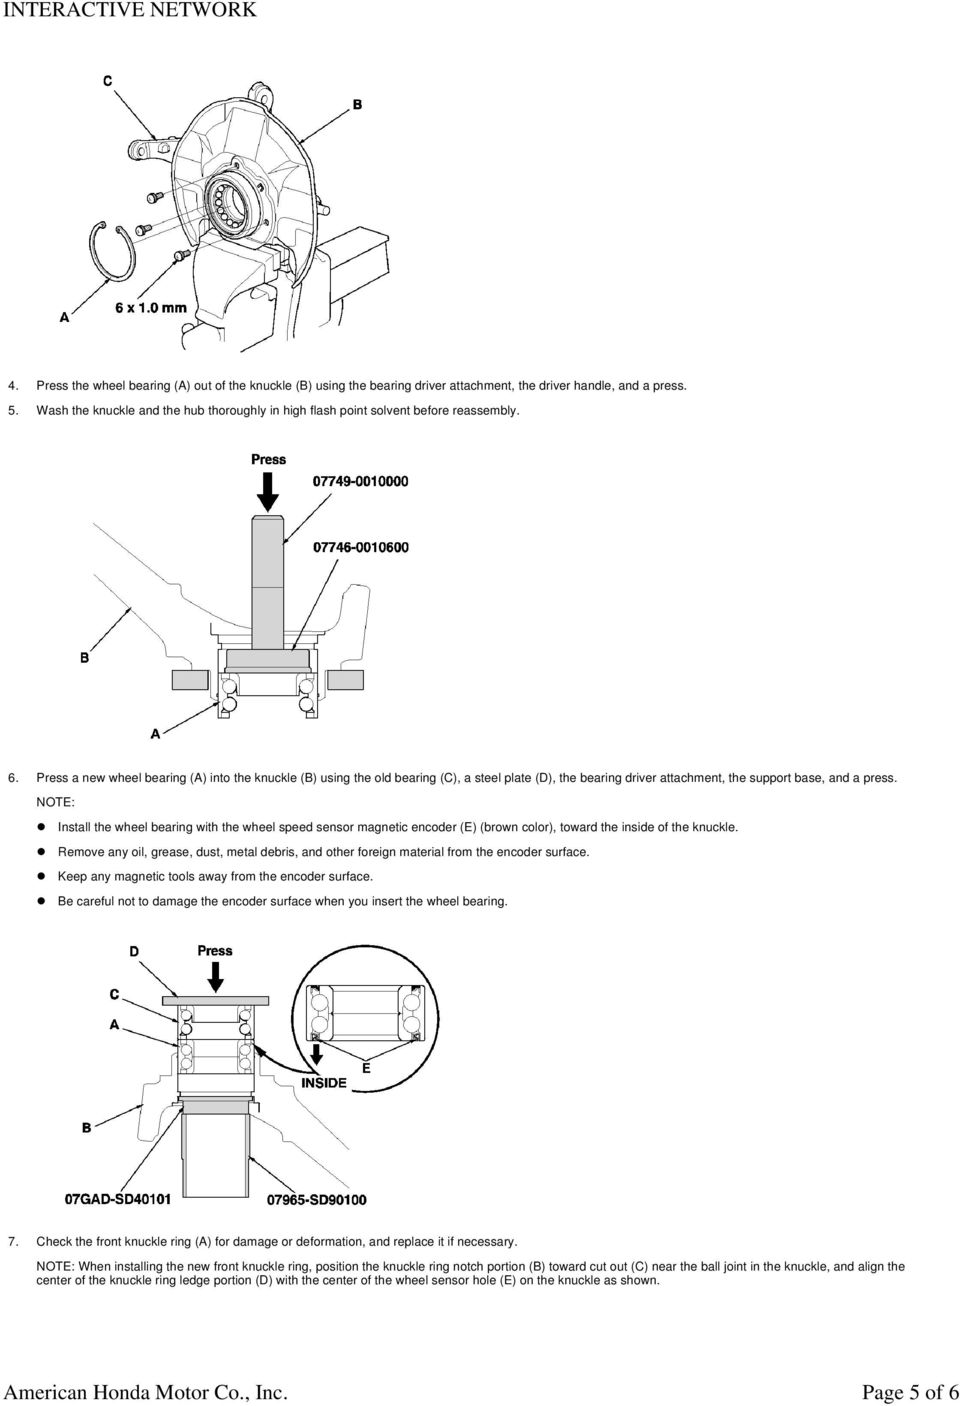 Press a new wheel bearing (A) into the knuckle (B) using the old bearing (C), a steel plate (D), the bearing driver attachment, the support base, and a press.